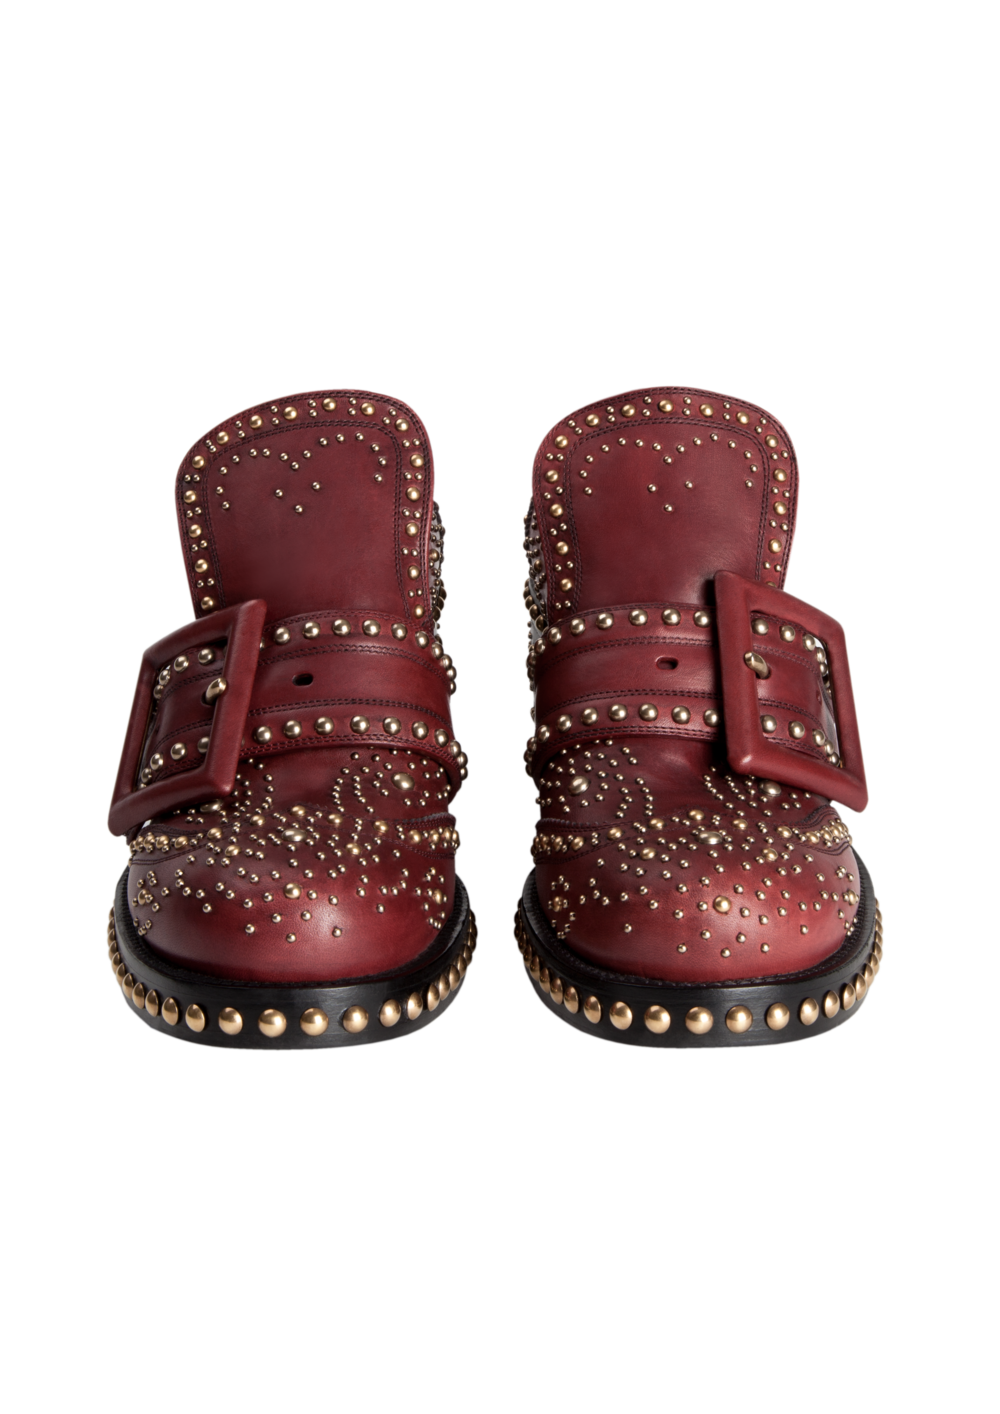 miumiu-shoes-redstud-13.png